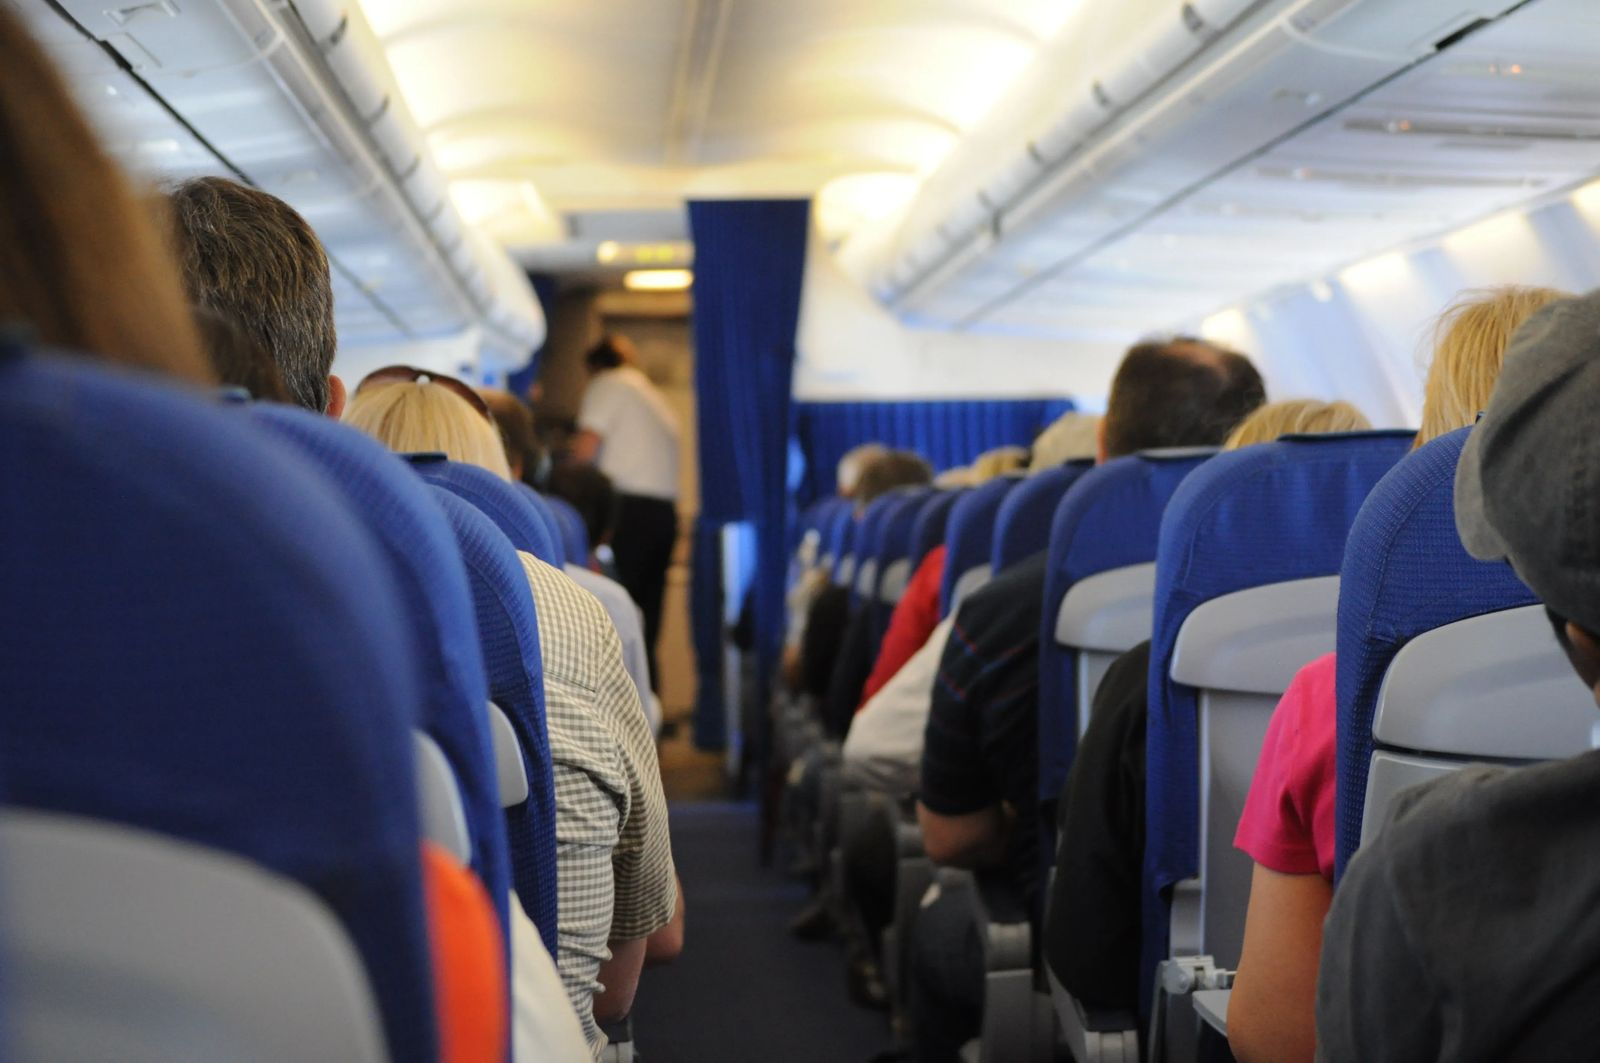 Airport Etiquette and Flying Etiquette